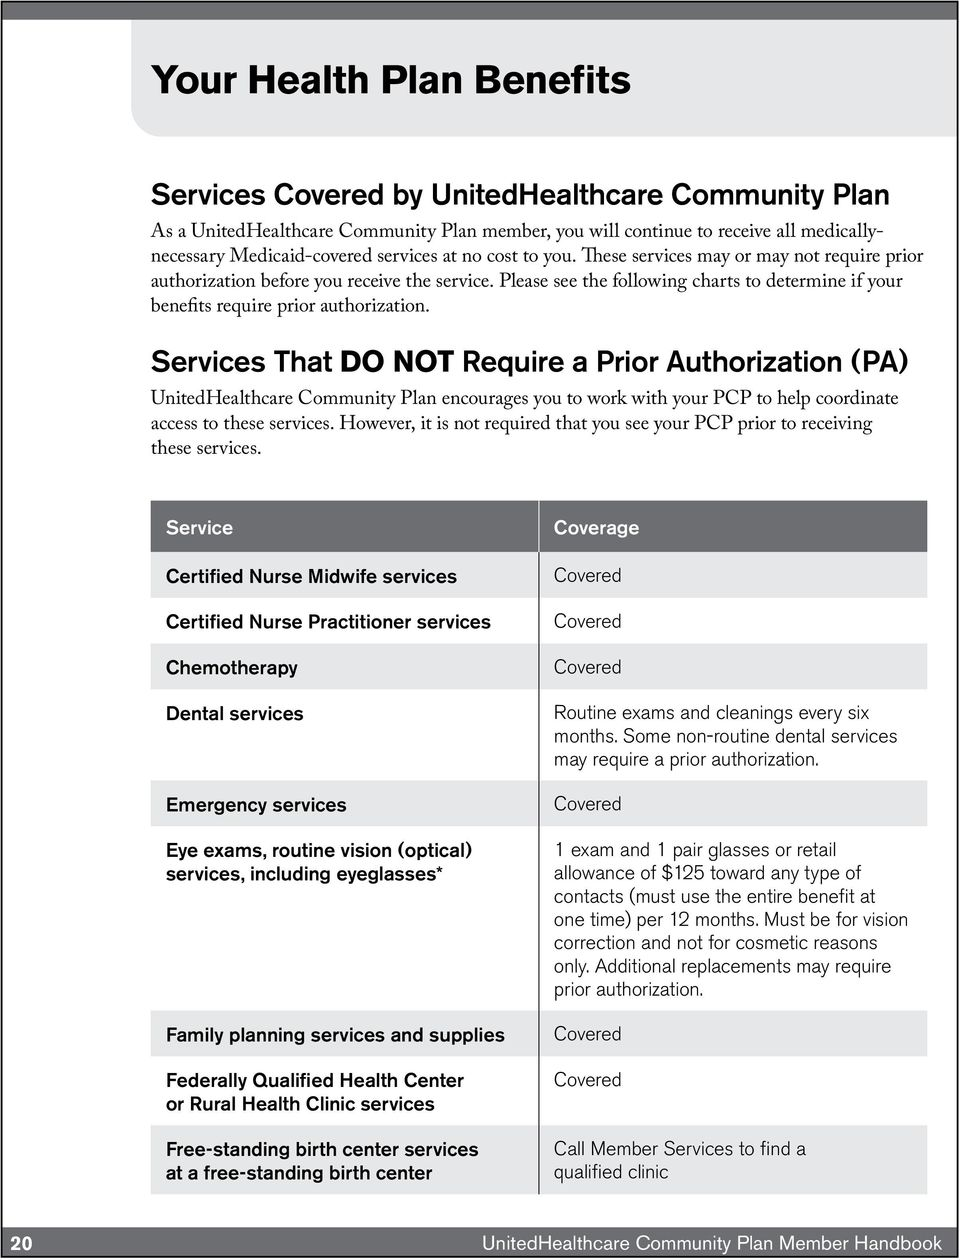 Please see the following charts to determine if your benefits require prior authorization.